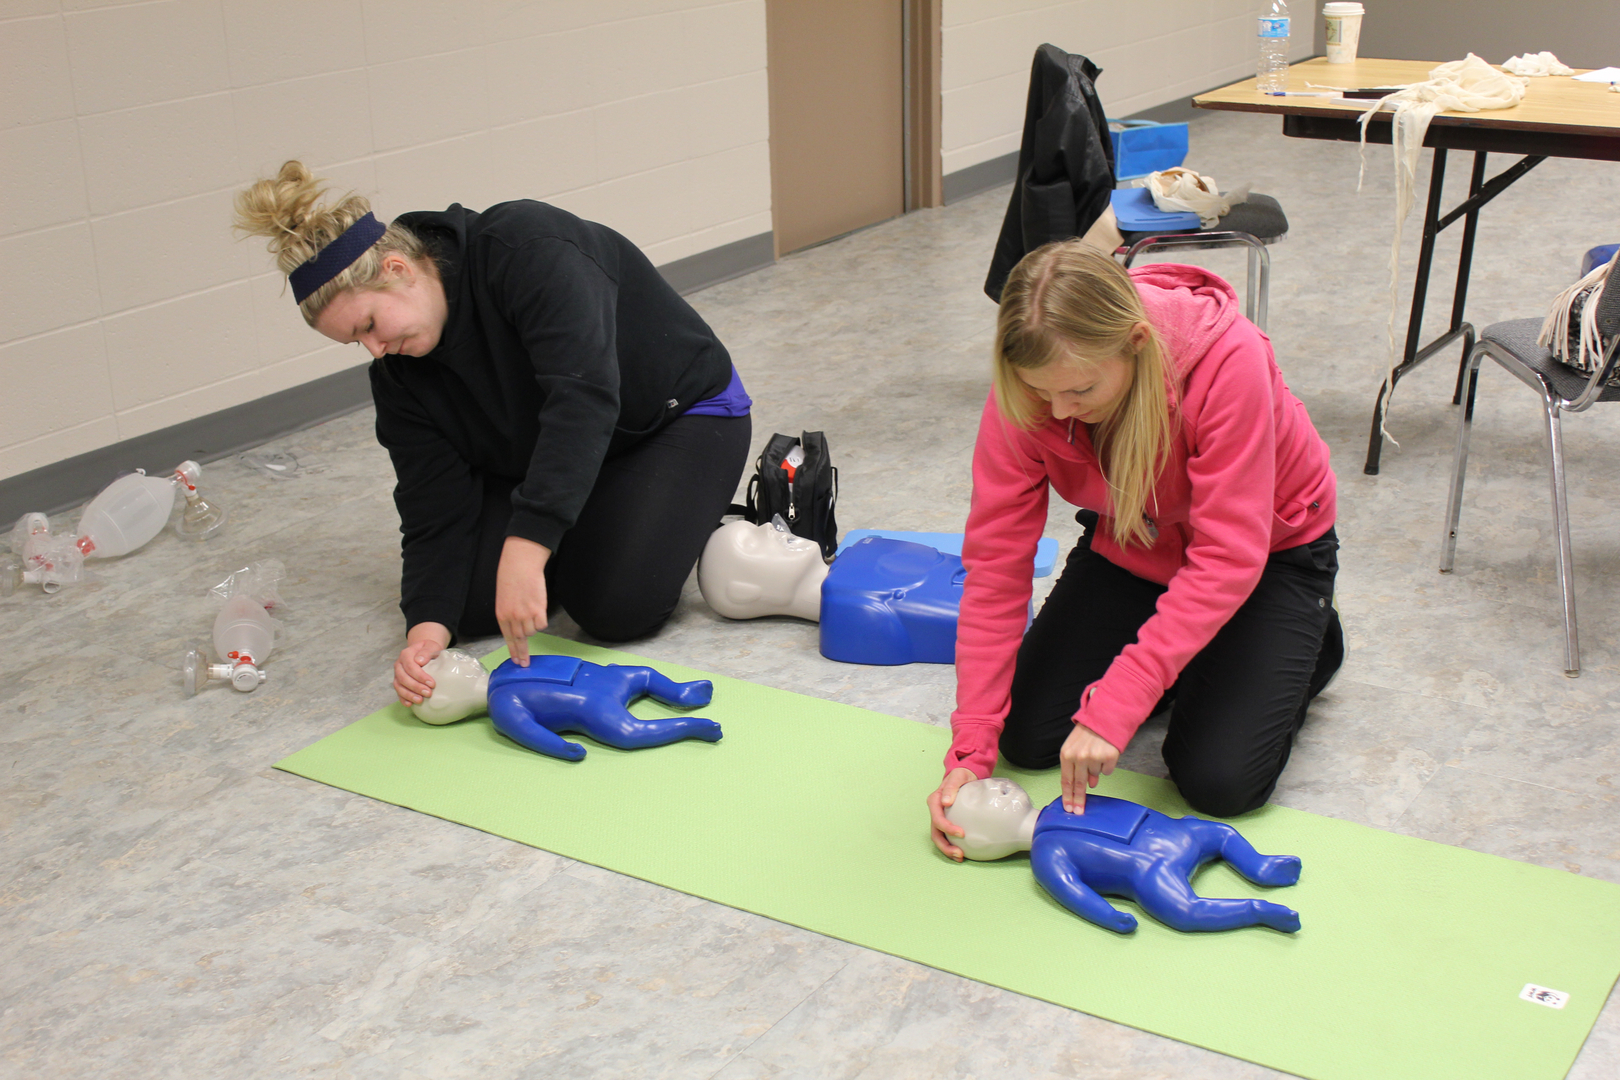 Impact first aid cpr first aid cpr training emergency training bls basic life support courses xflitez Gallery